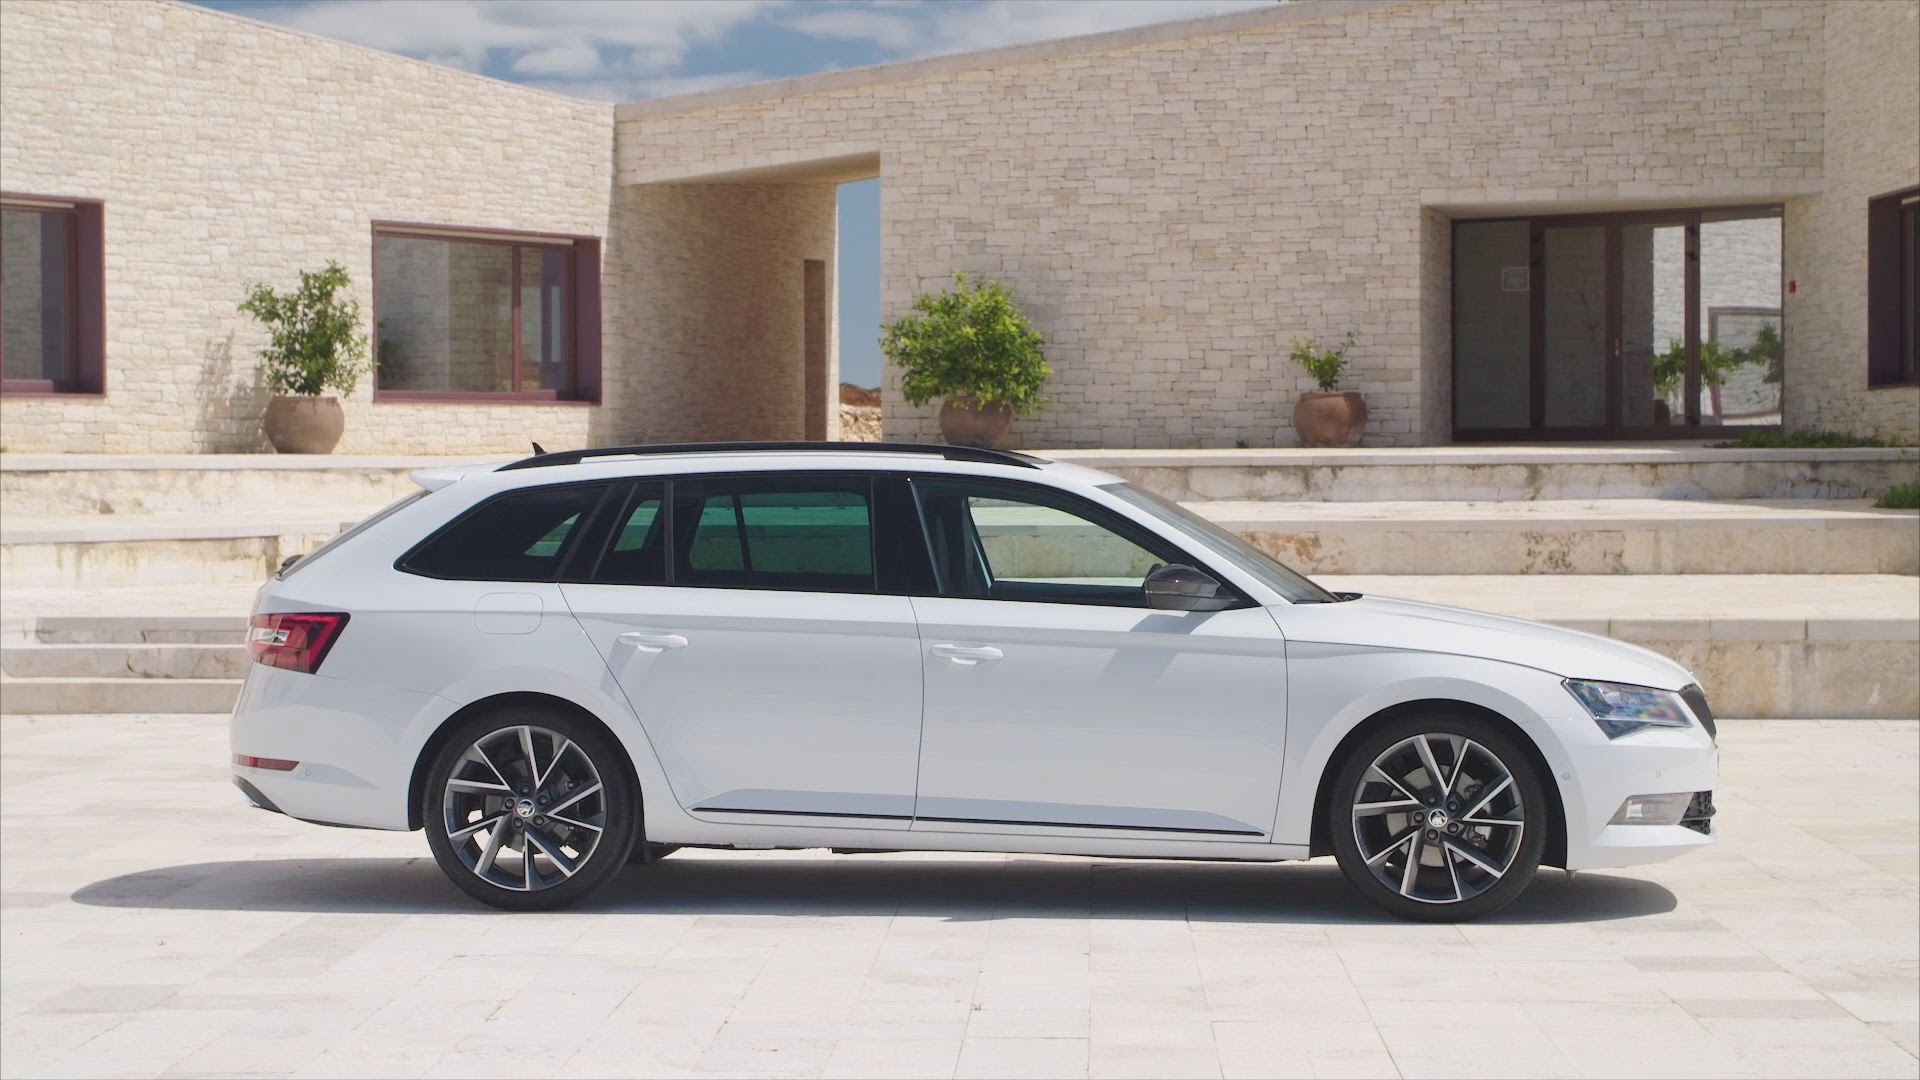 skoda superb estate 2 0tdi sportline 5dr car planet. Black Bedroom Furniture Sets. Home Design Ideas